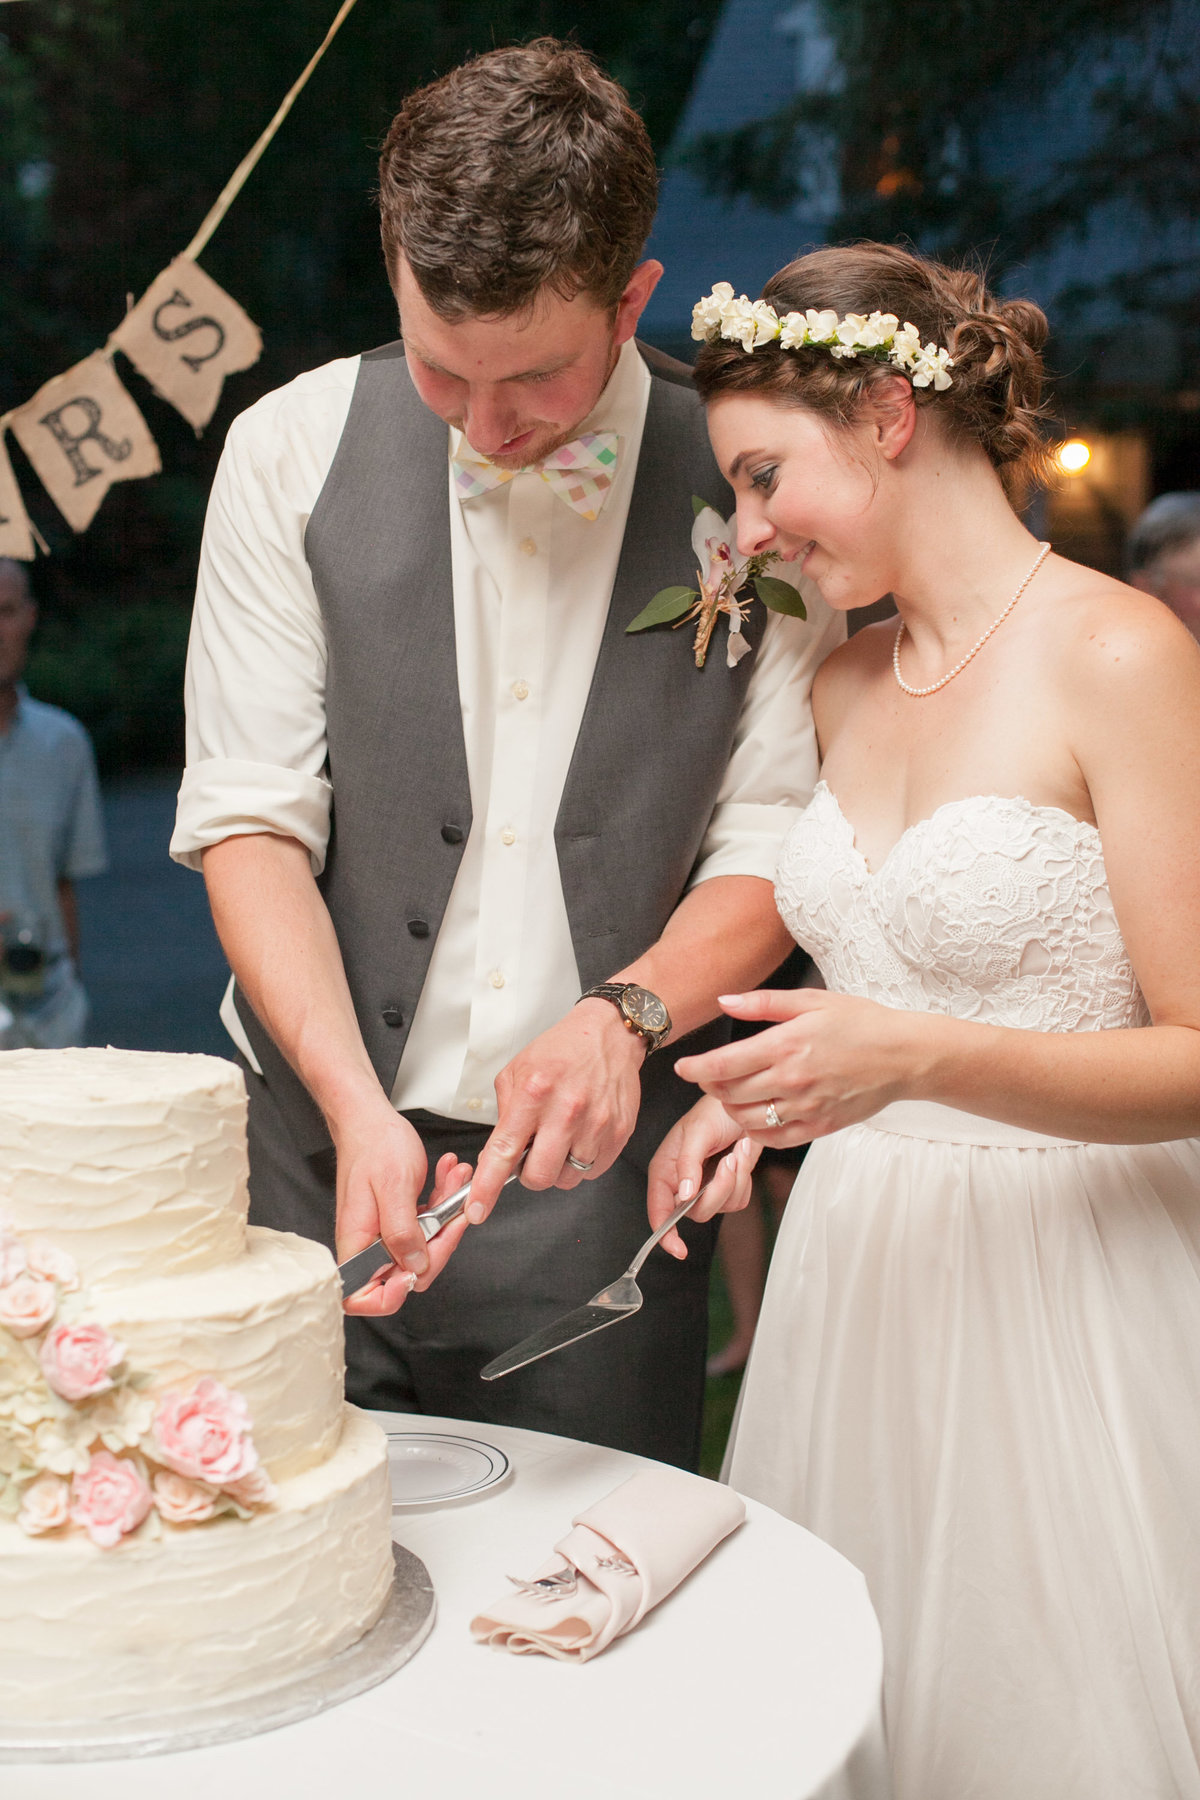 AlisonandJohnWedding-CakeCutting-3